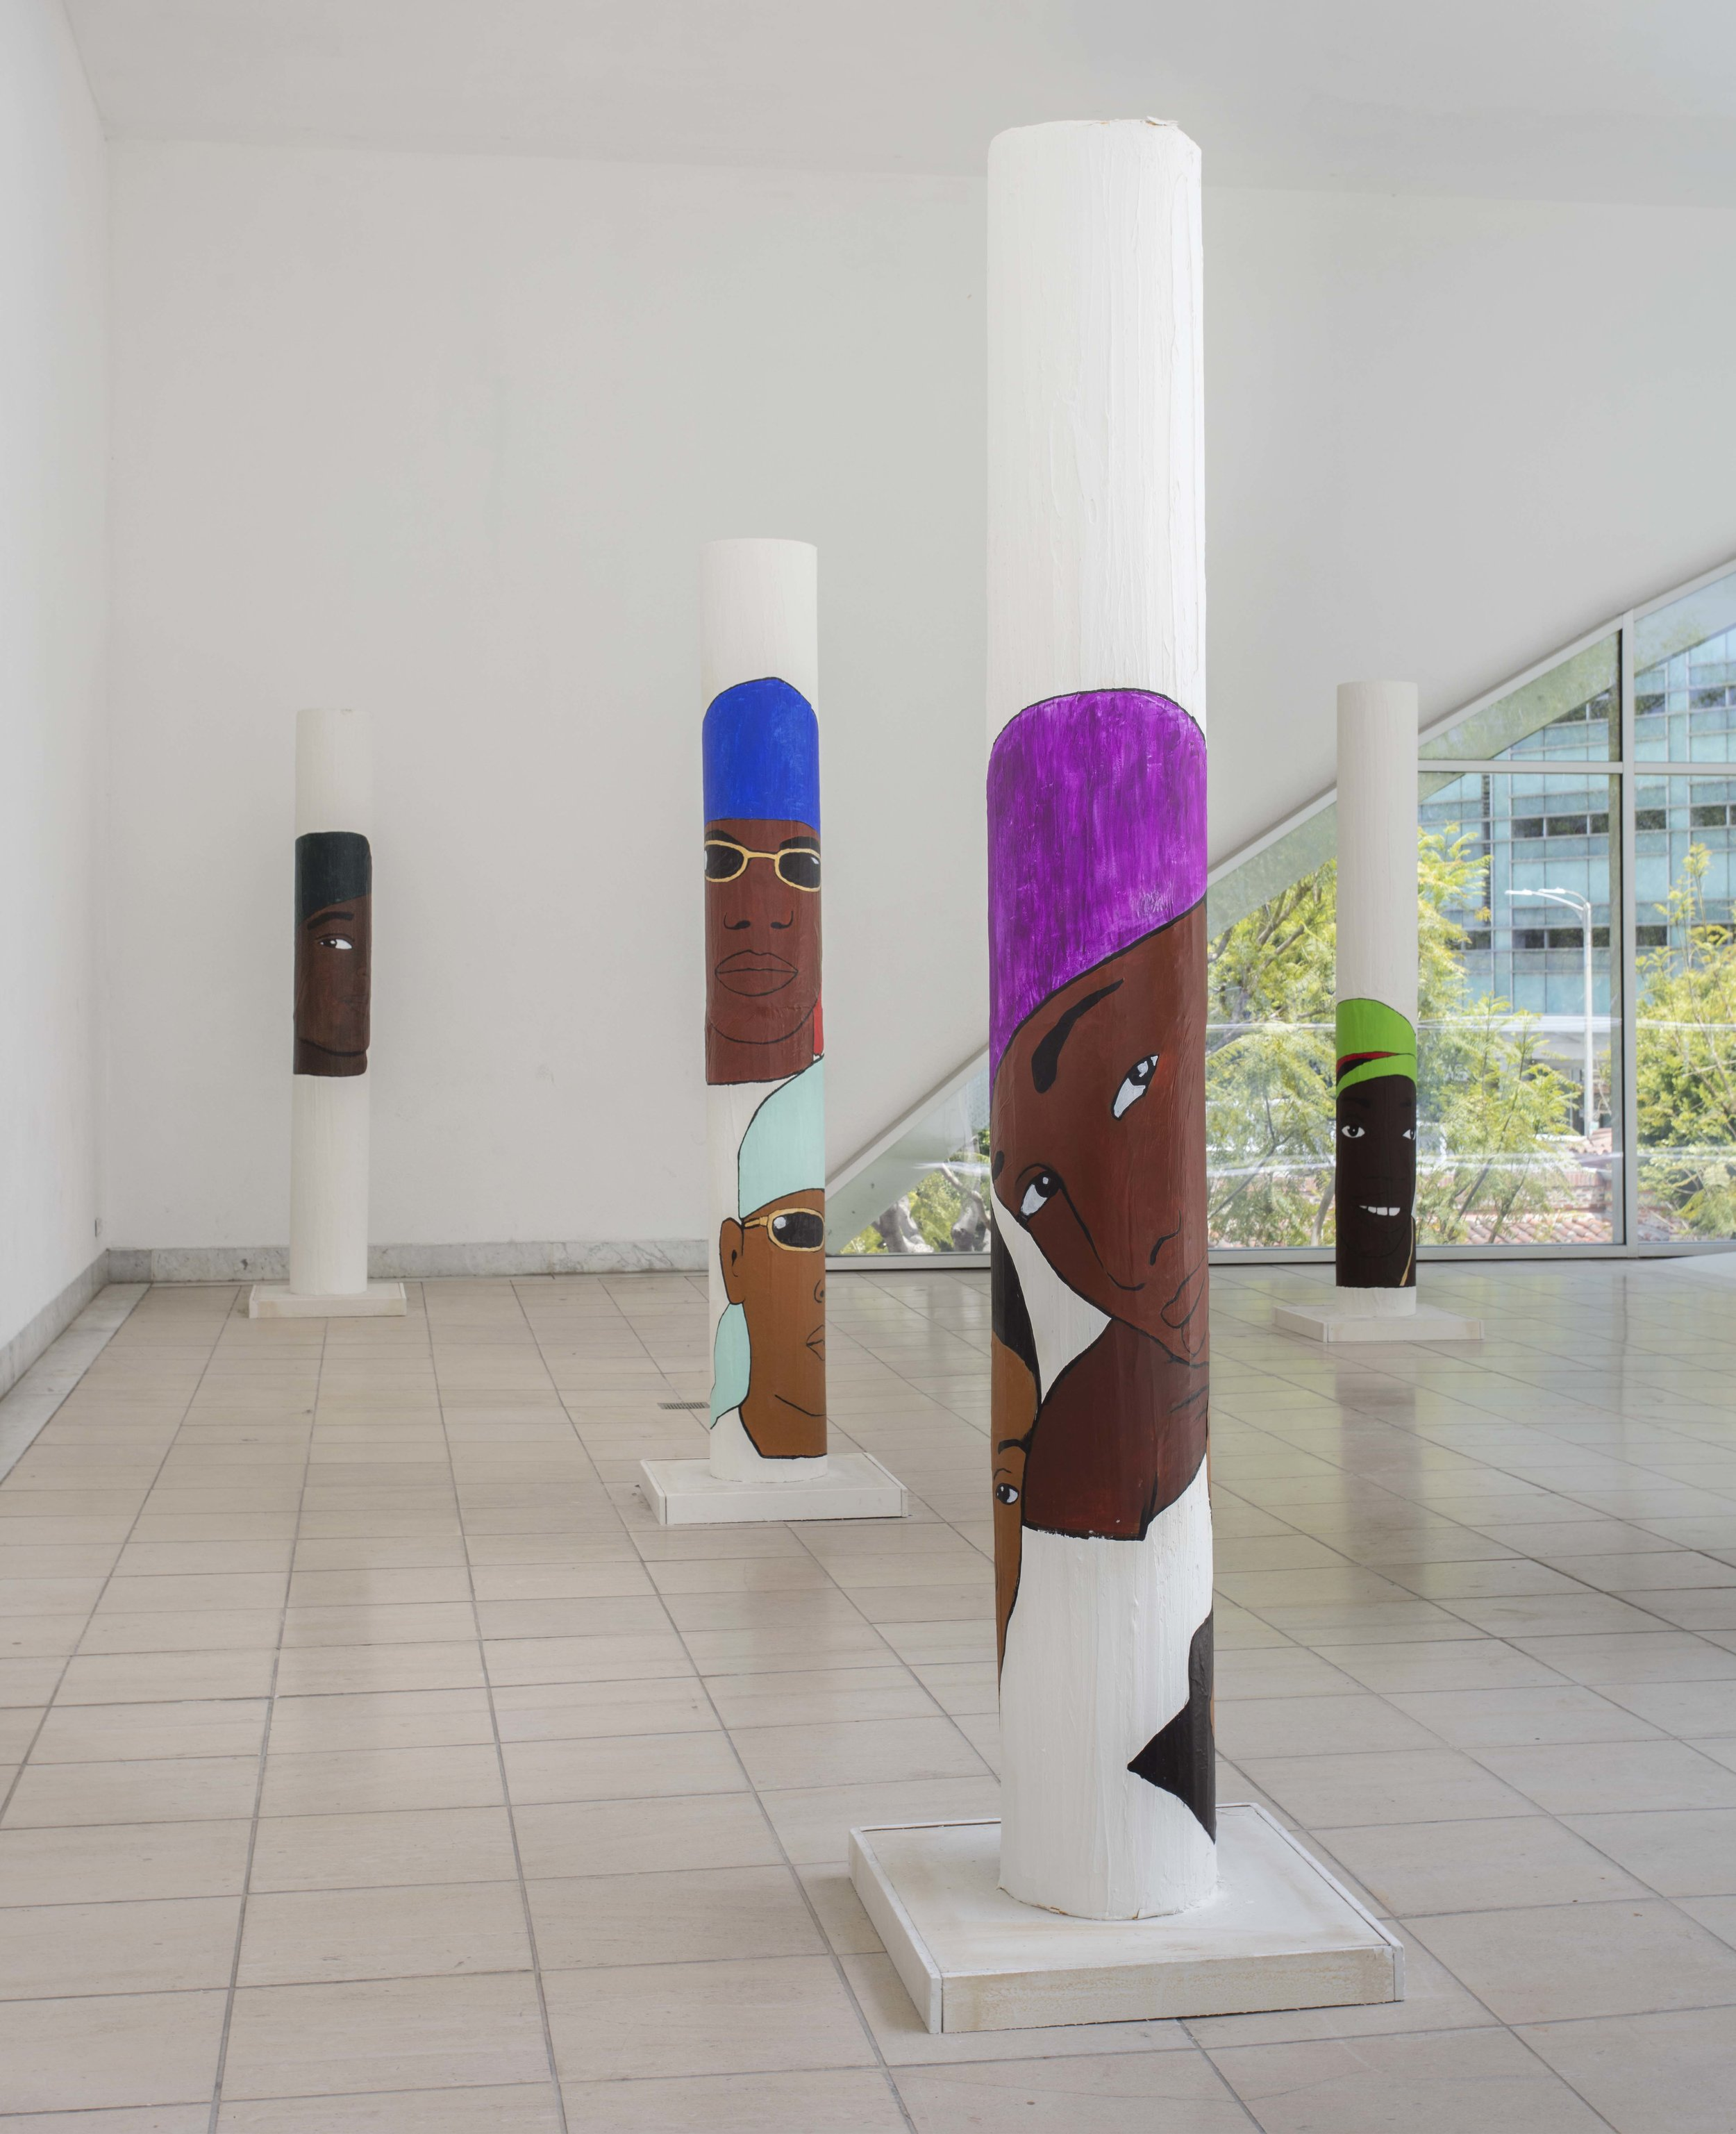 Lauren Halsey, Installation view, Made in L.A. 2018, June 3-September 2, 2018, Hammer Museum, Los Angeles. Photo: Brian Forrest